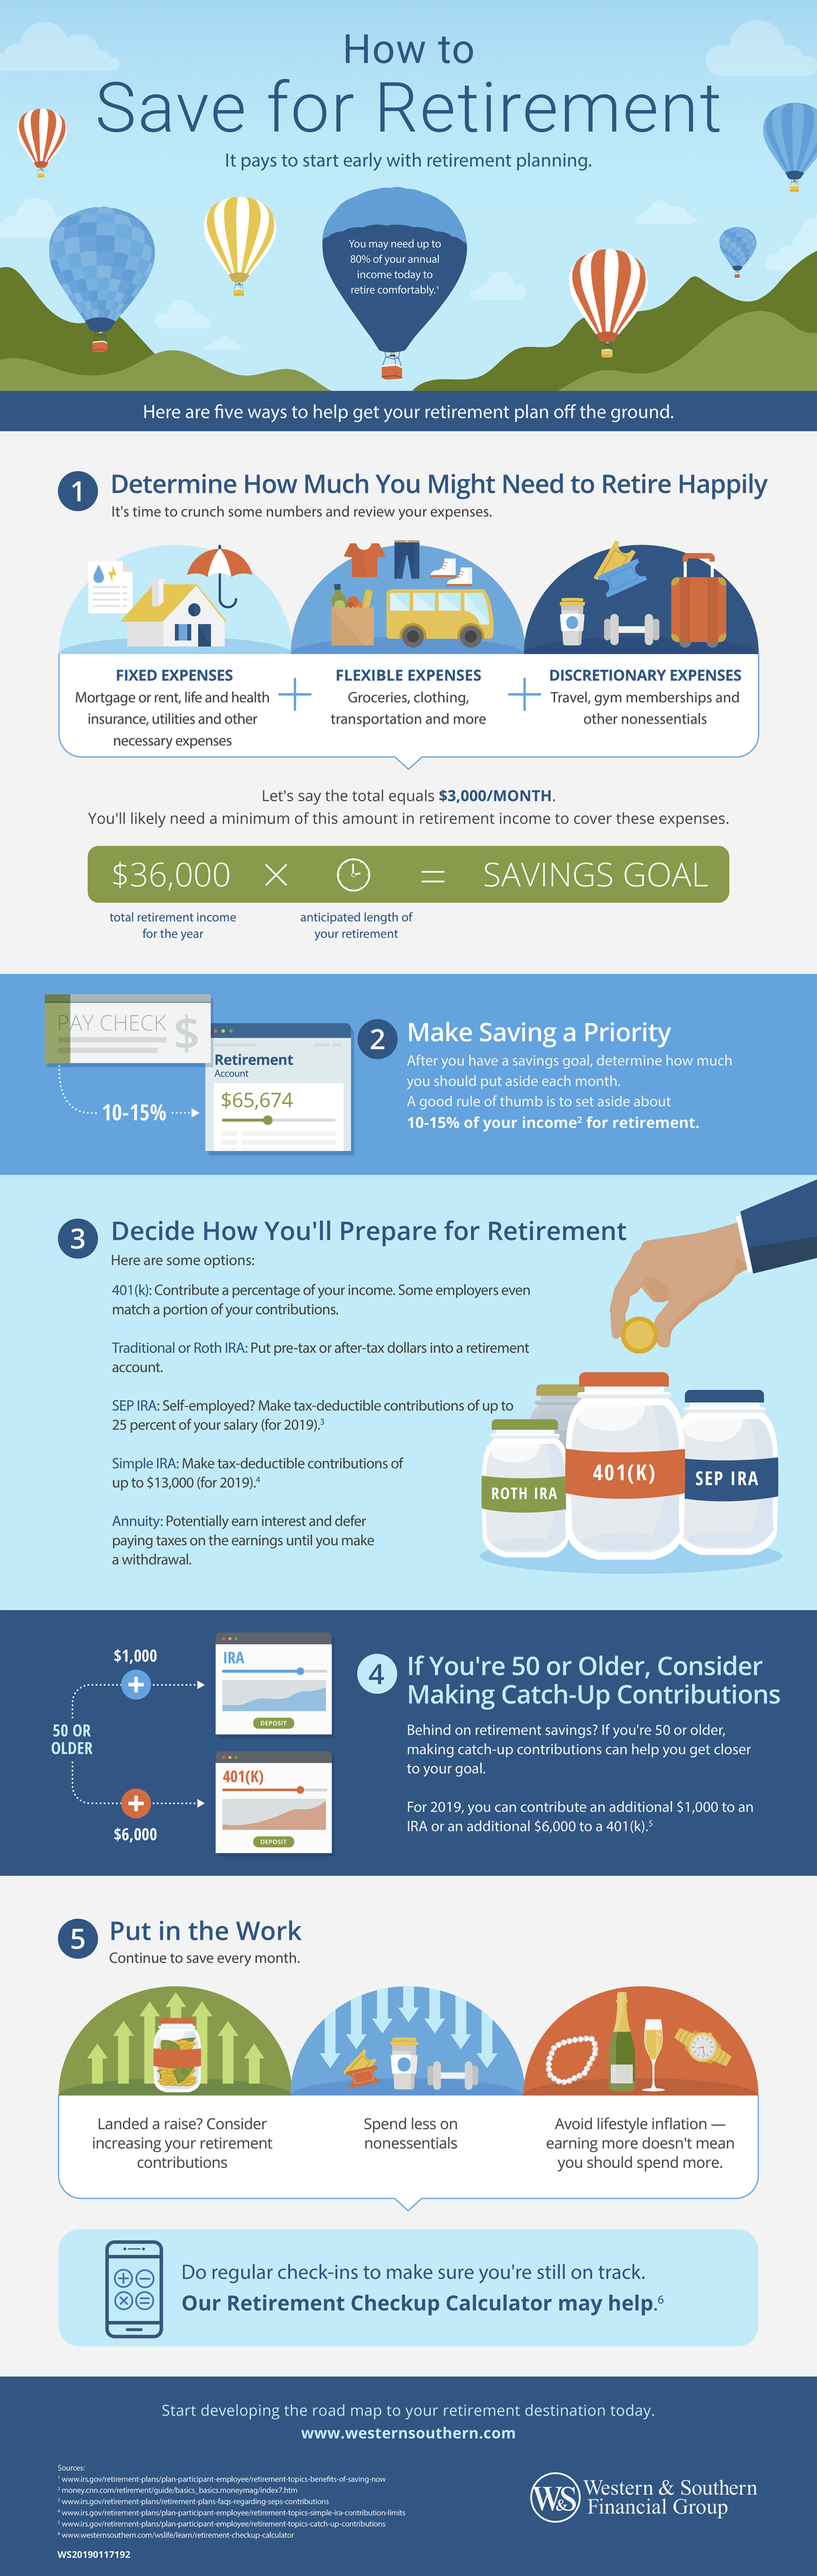 """<p>Western & Southern's content helps answer many questions around financial investments, retirement, and insurance. Naturally, they sought to simplify the big questions people ask when they start saving for retirement. To meet these needs, Skyword produced an infographic around the keyword """"How to Save for Retirement"""" and highlighted the five main steps to consider through engaging visuals and easy-to-digest copy. The resulting infographic has gained traction on Western & Southern's blog and has seen traffic from both search and social. </p>"""